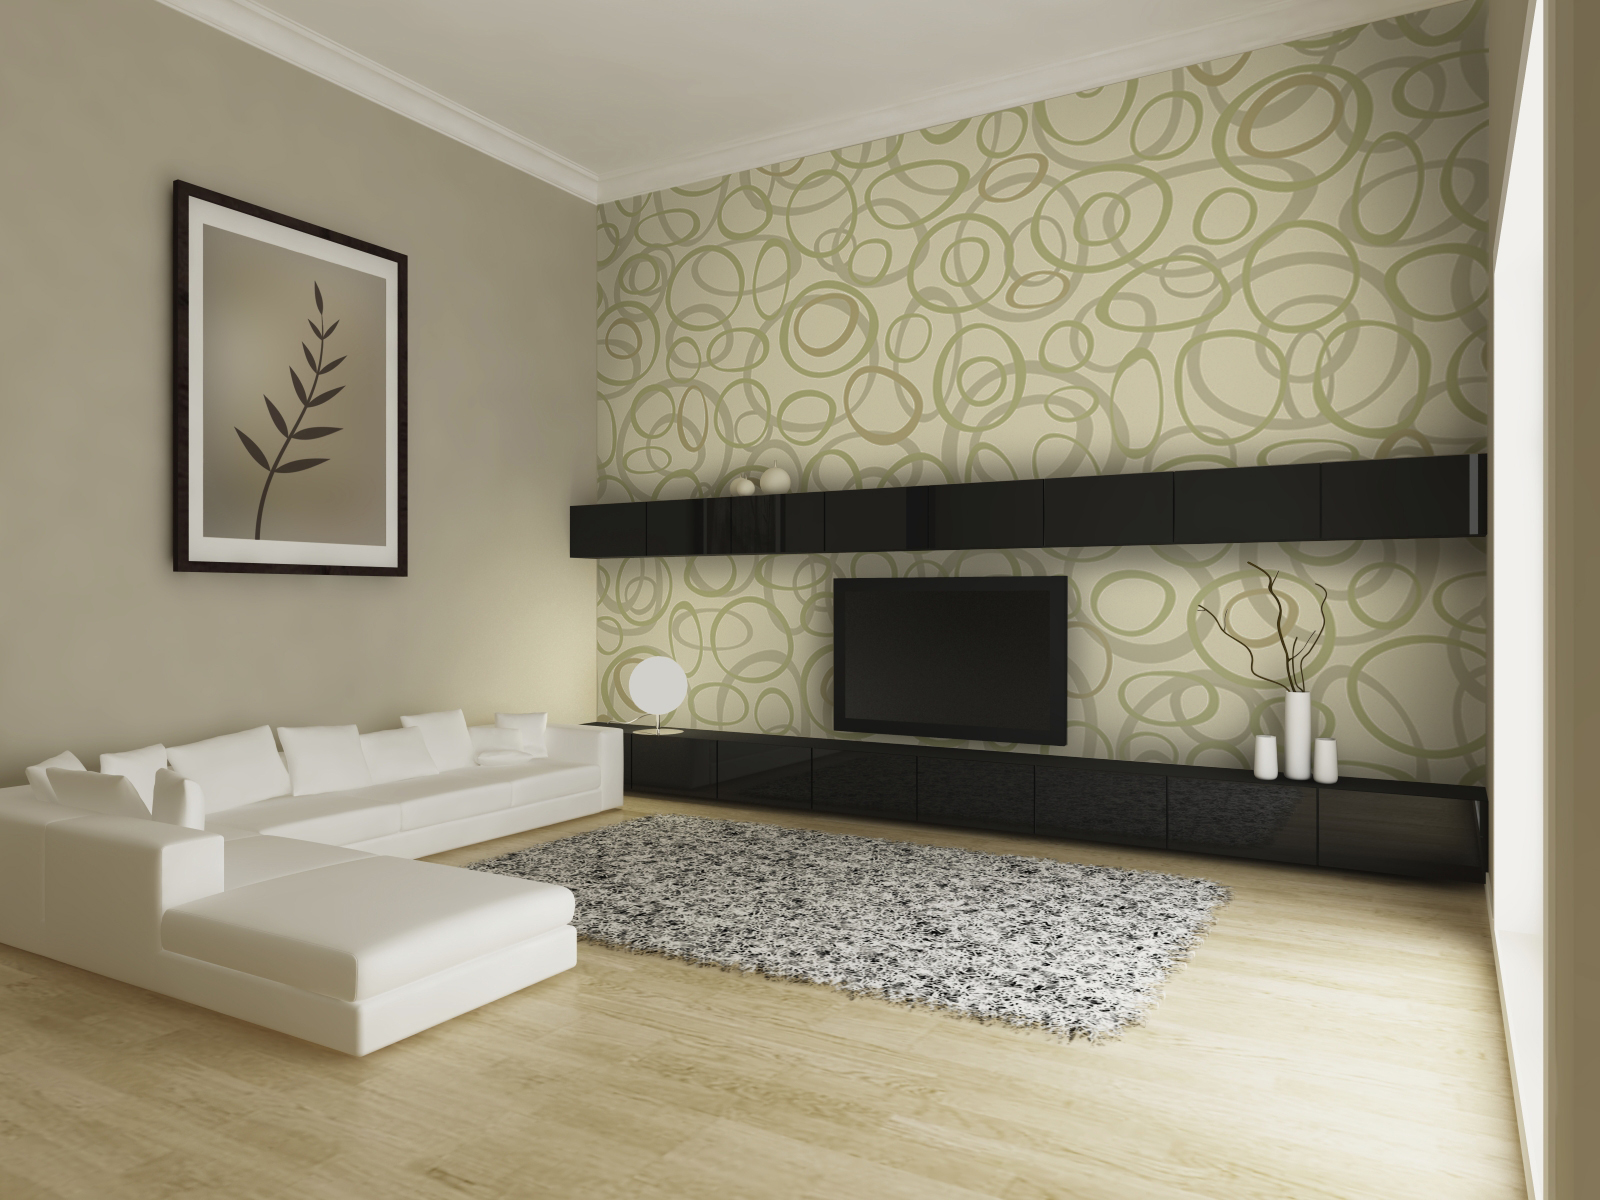 Interior design wallpaper 1600x1200 81460 for Interiors by design